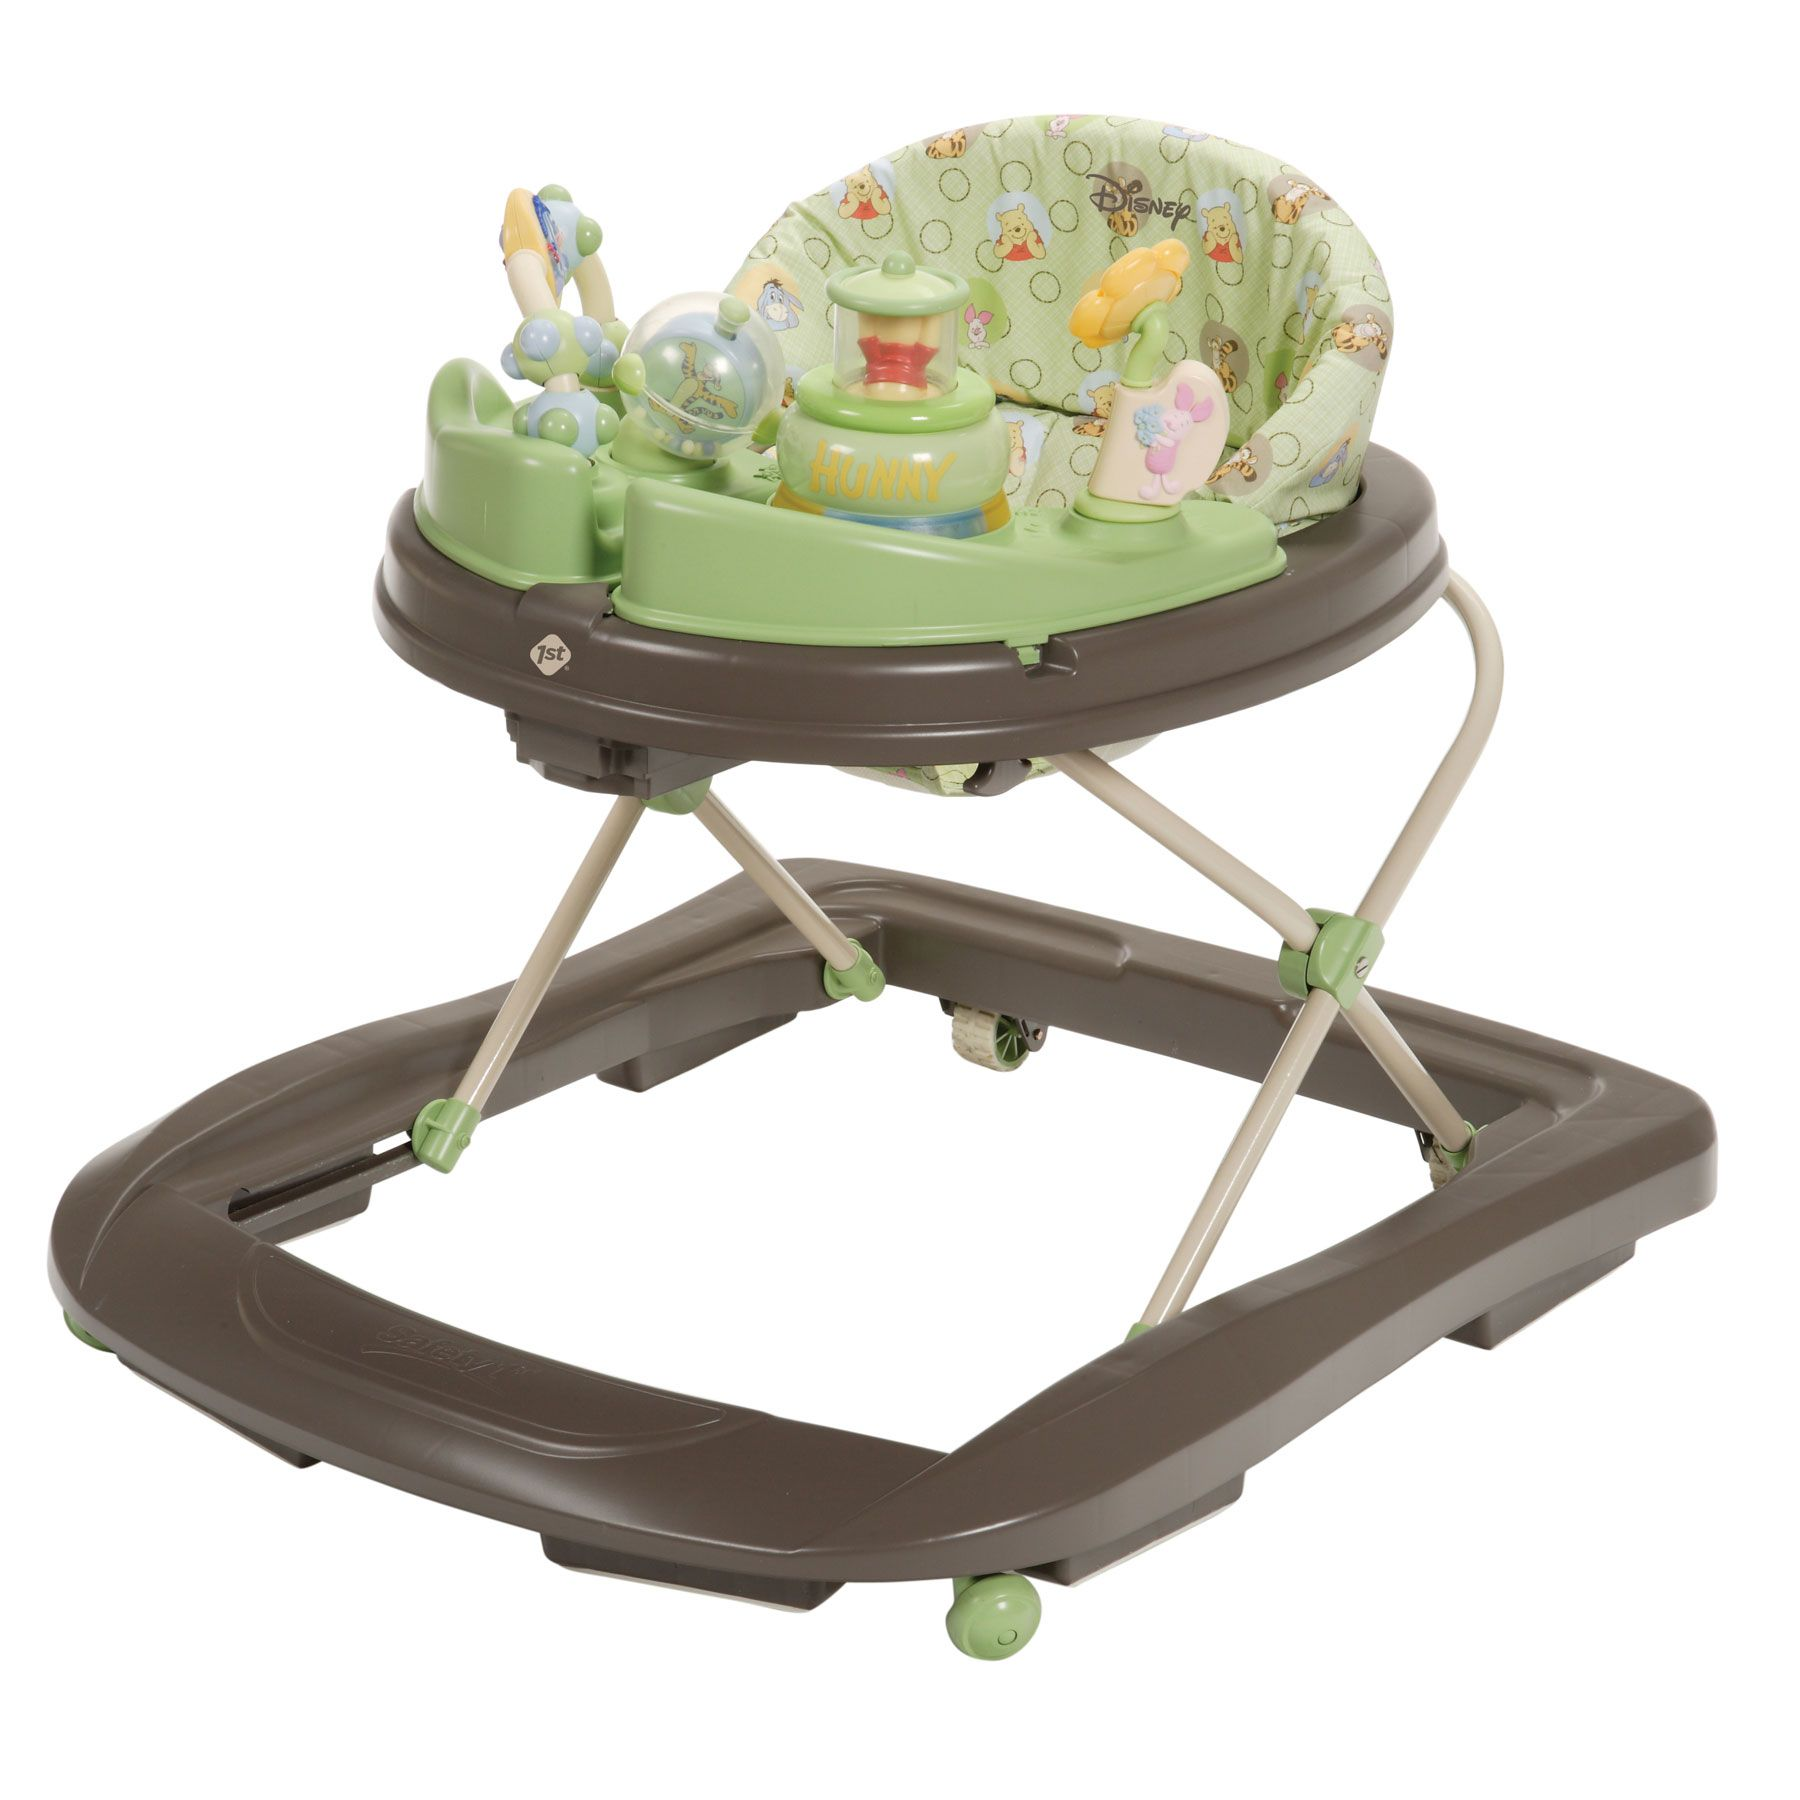 Pooh Bubbles Music & Lights™ Walker from Safety 1st